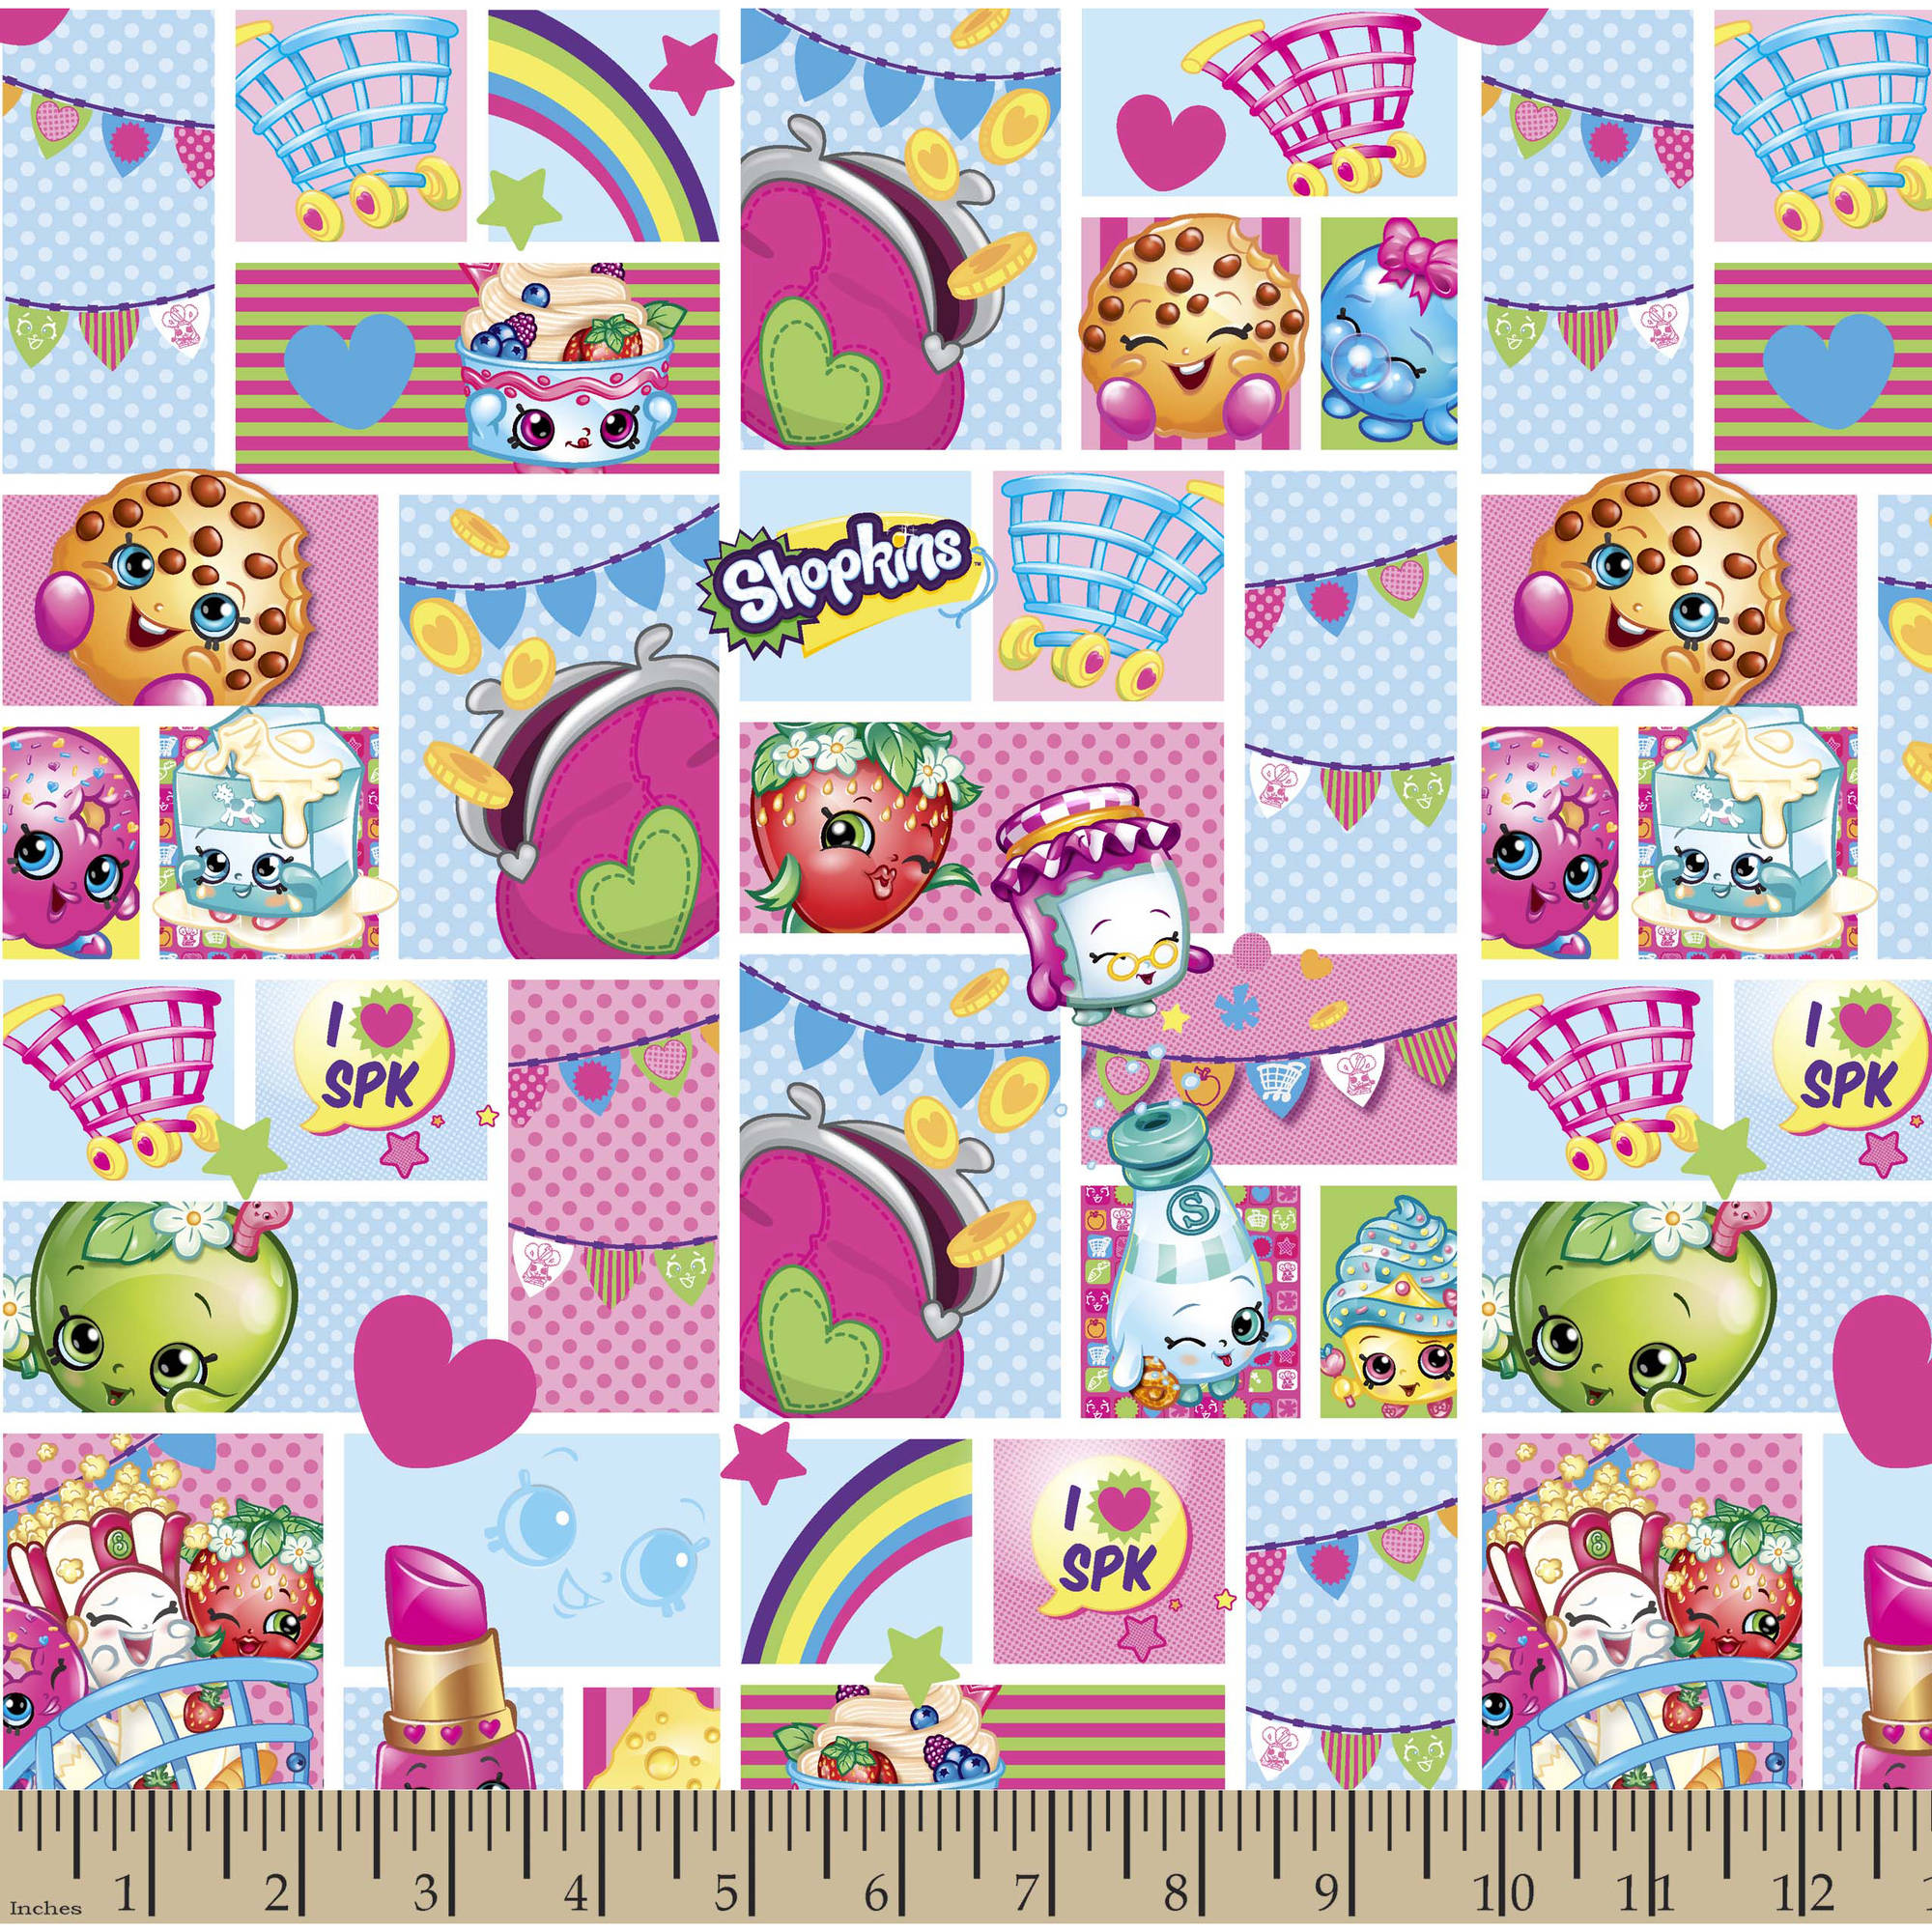 "Moose Shopkins Patch Party Fabric by the Yard, Multi, 43""/44"" Width"